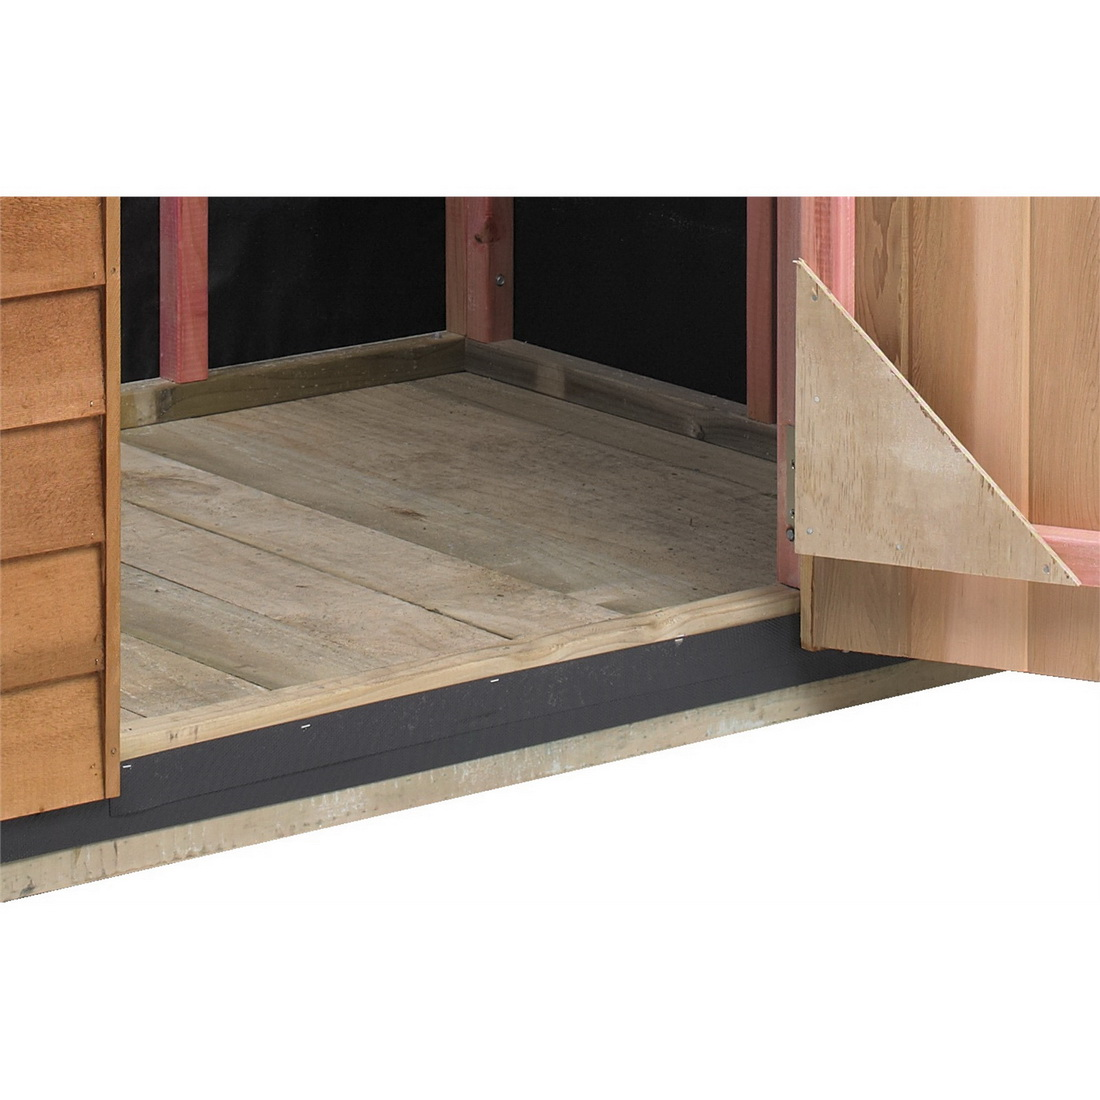 Hampshire Garden Shed Timber Floor Kit